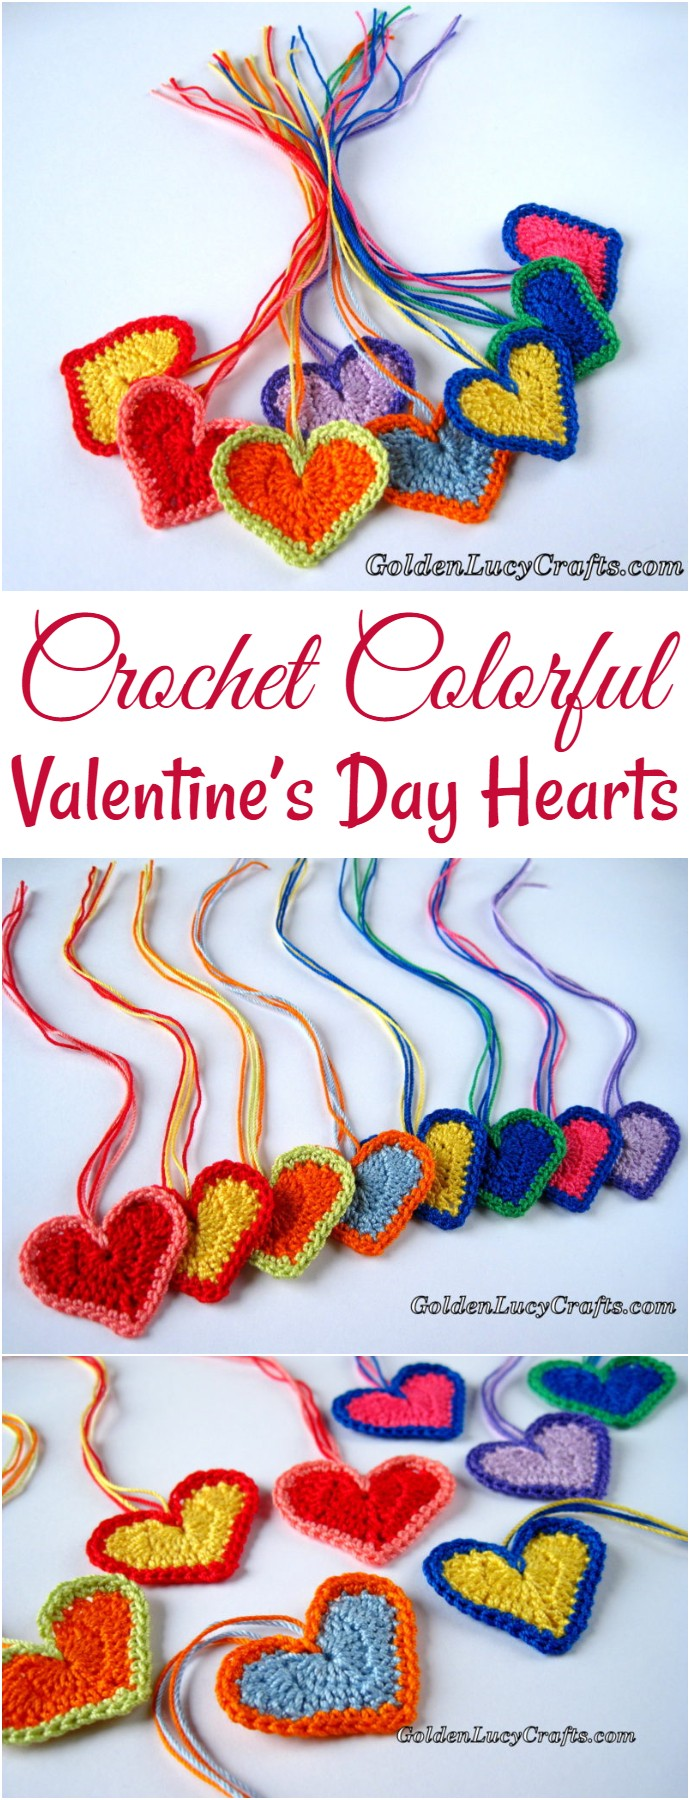 Crochet Colorful Valentine's Day Hearts